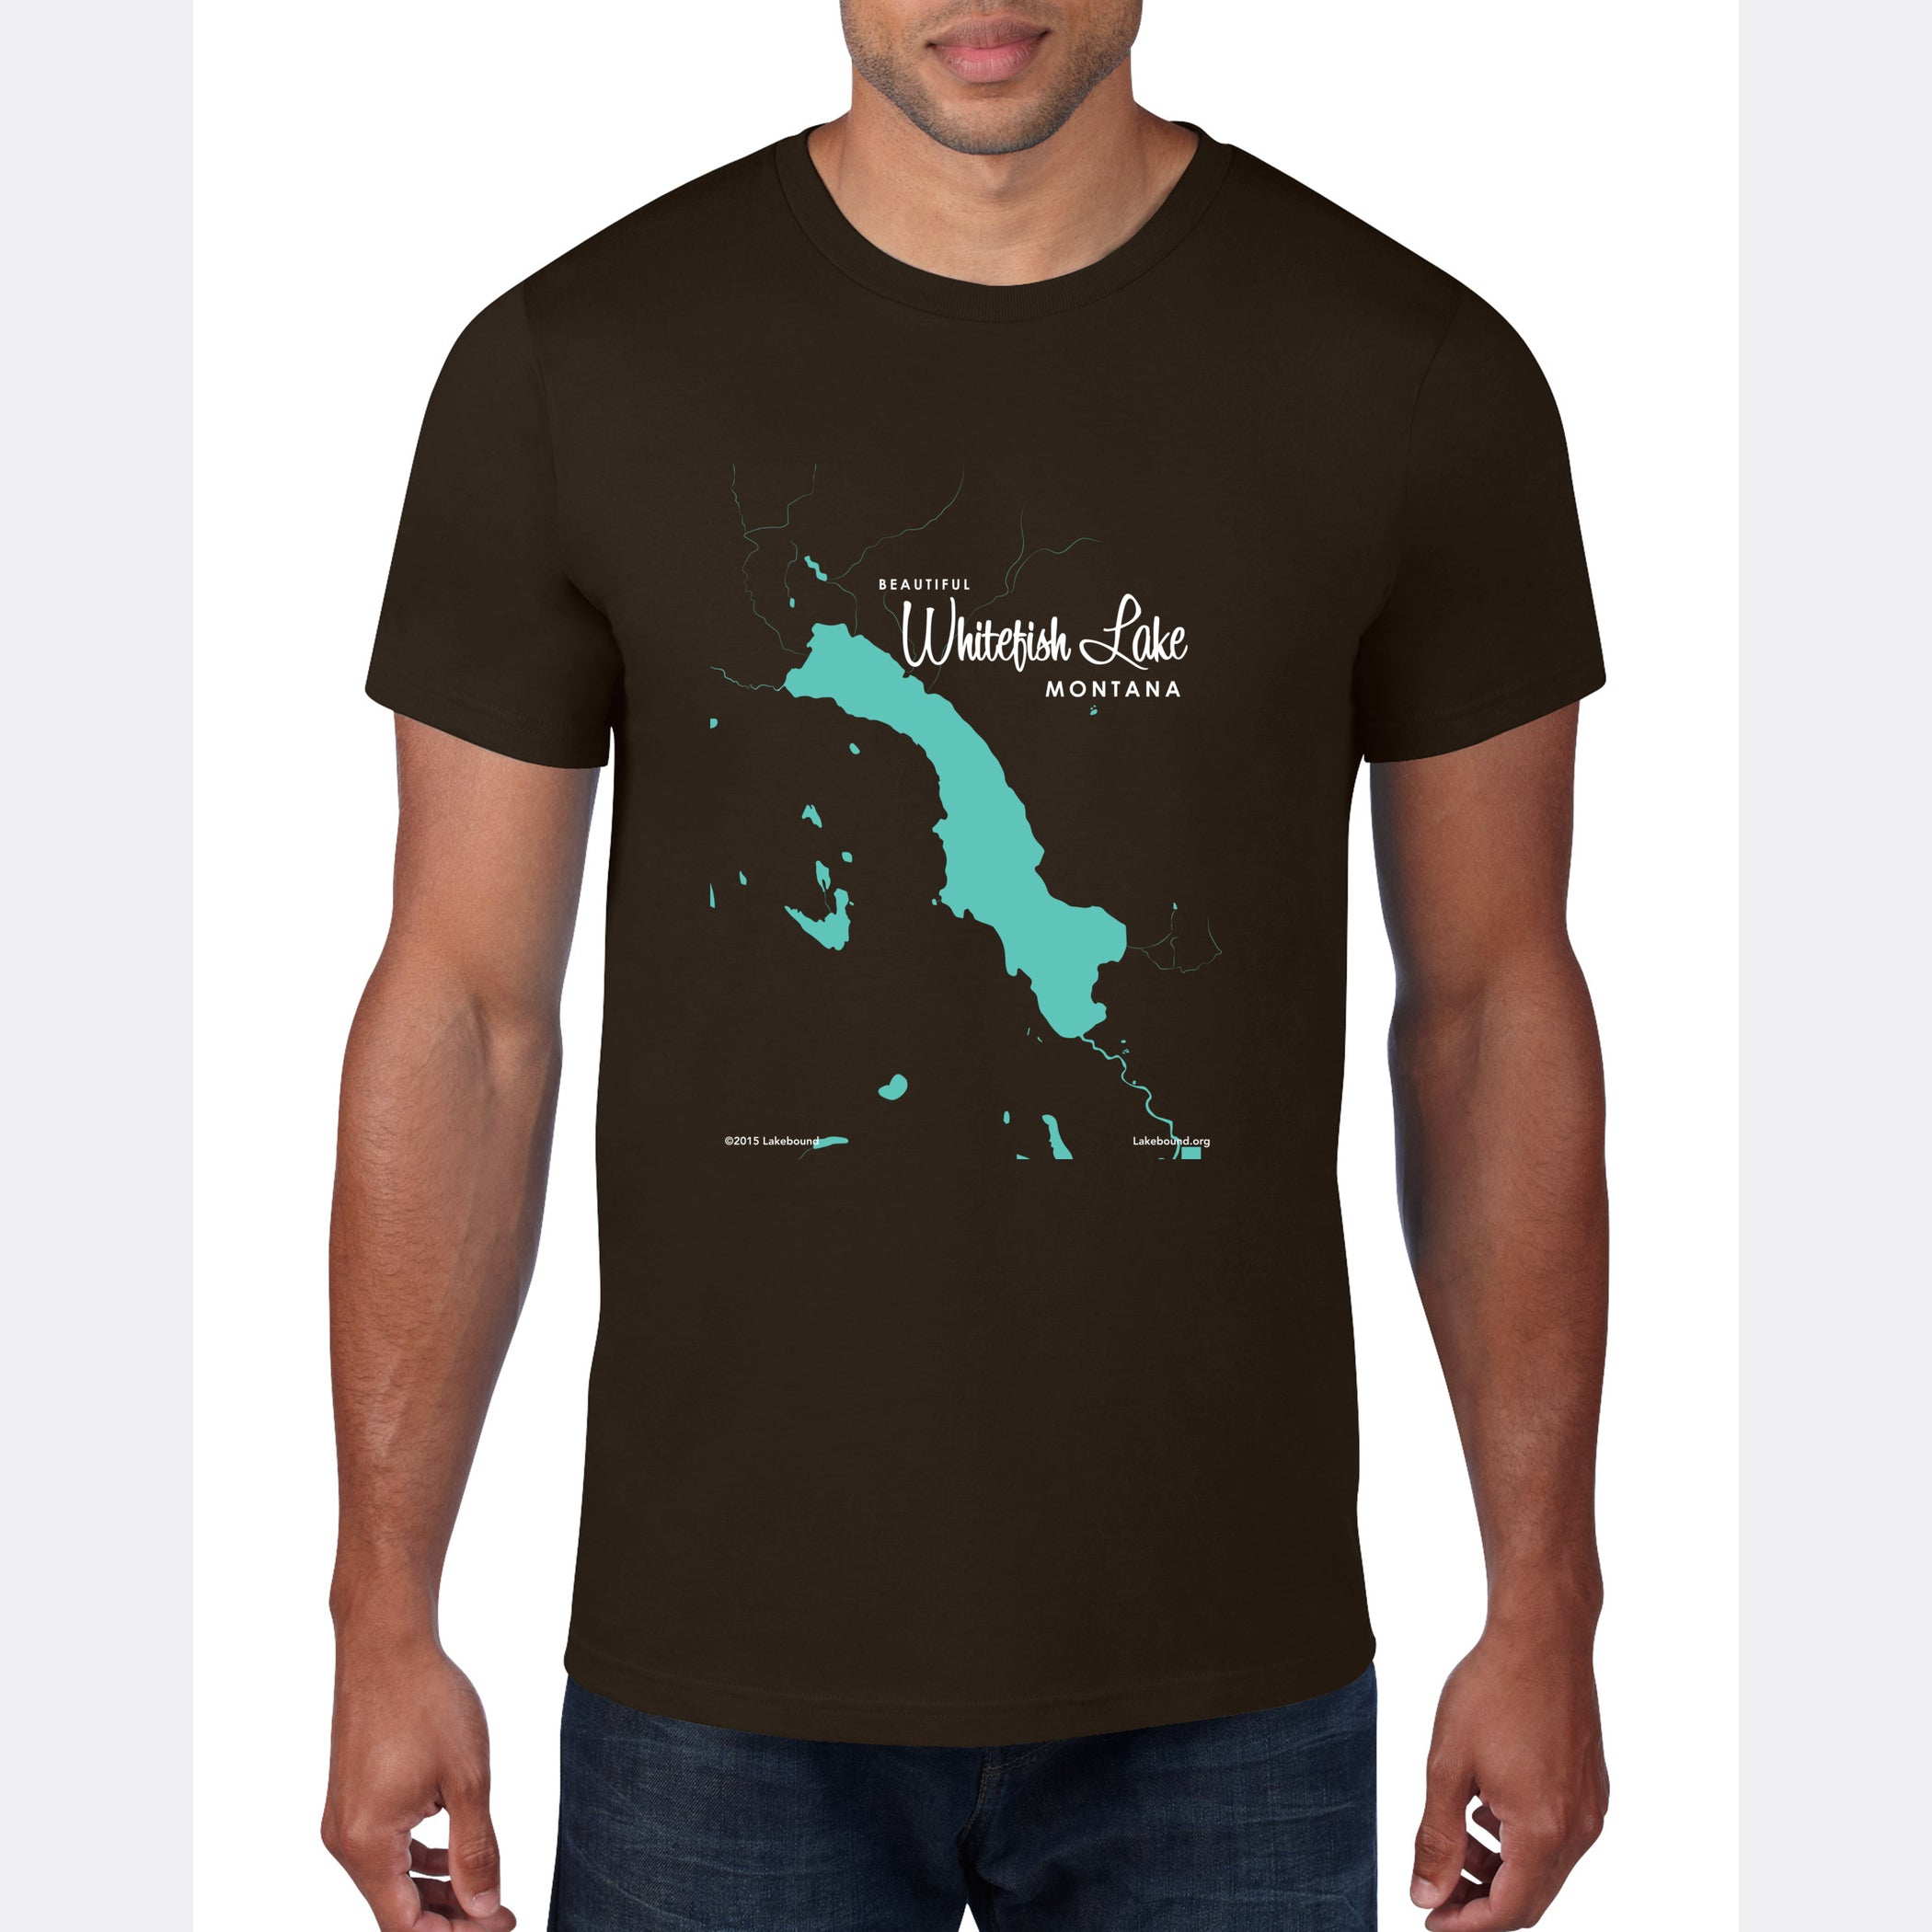 Whitefish Lake Montana, T-Shirt